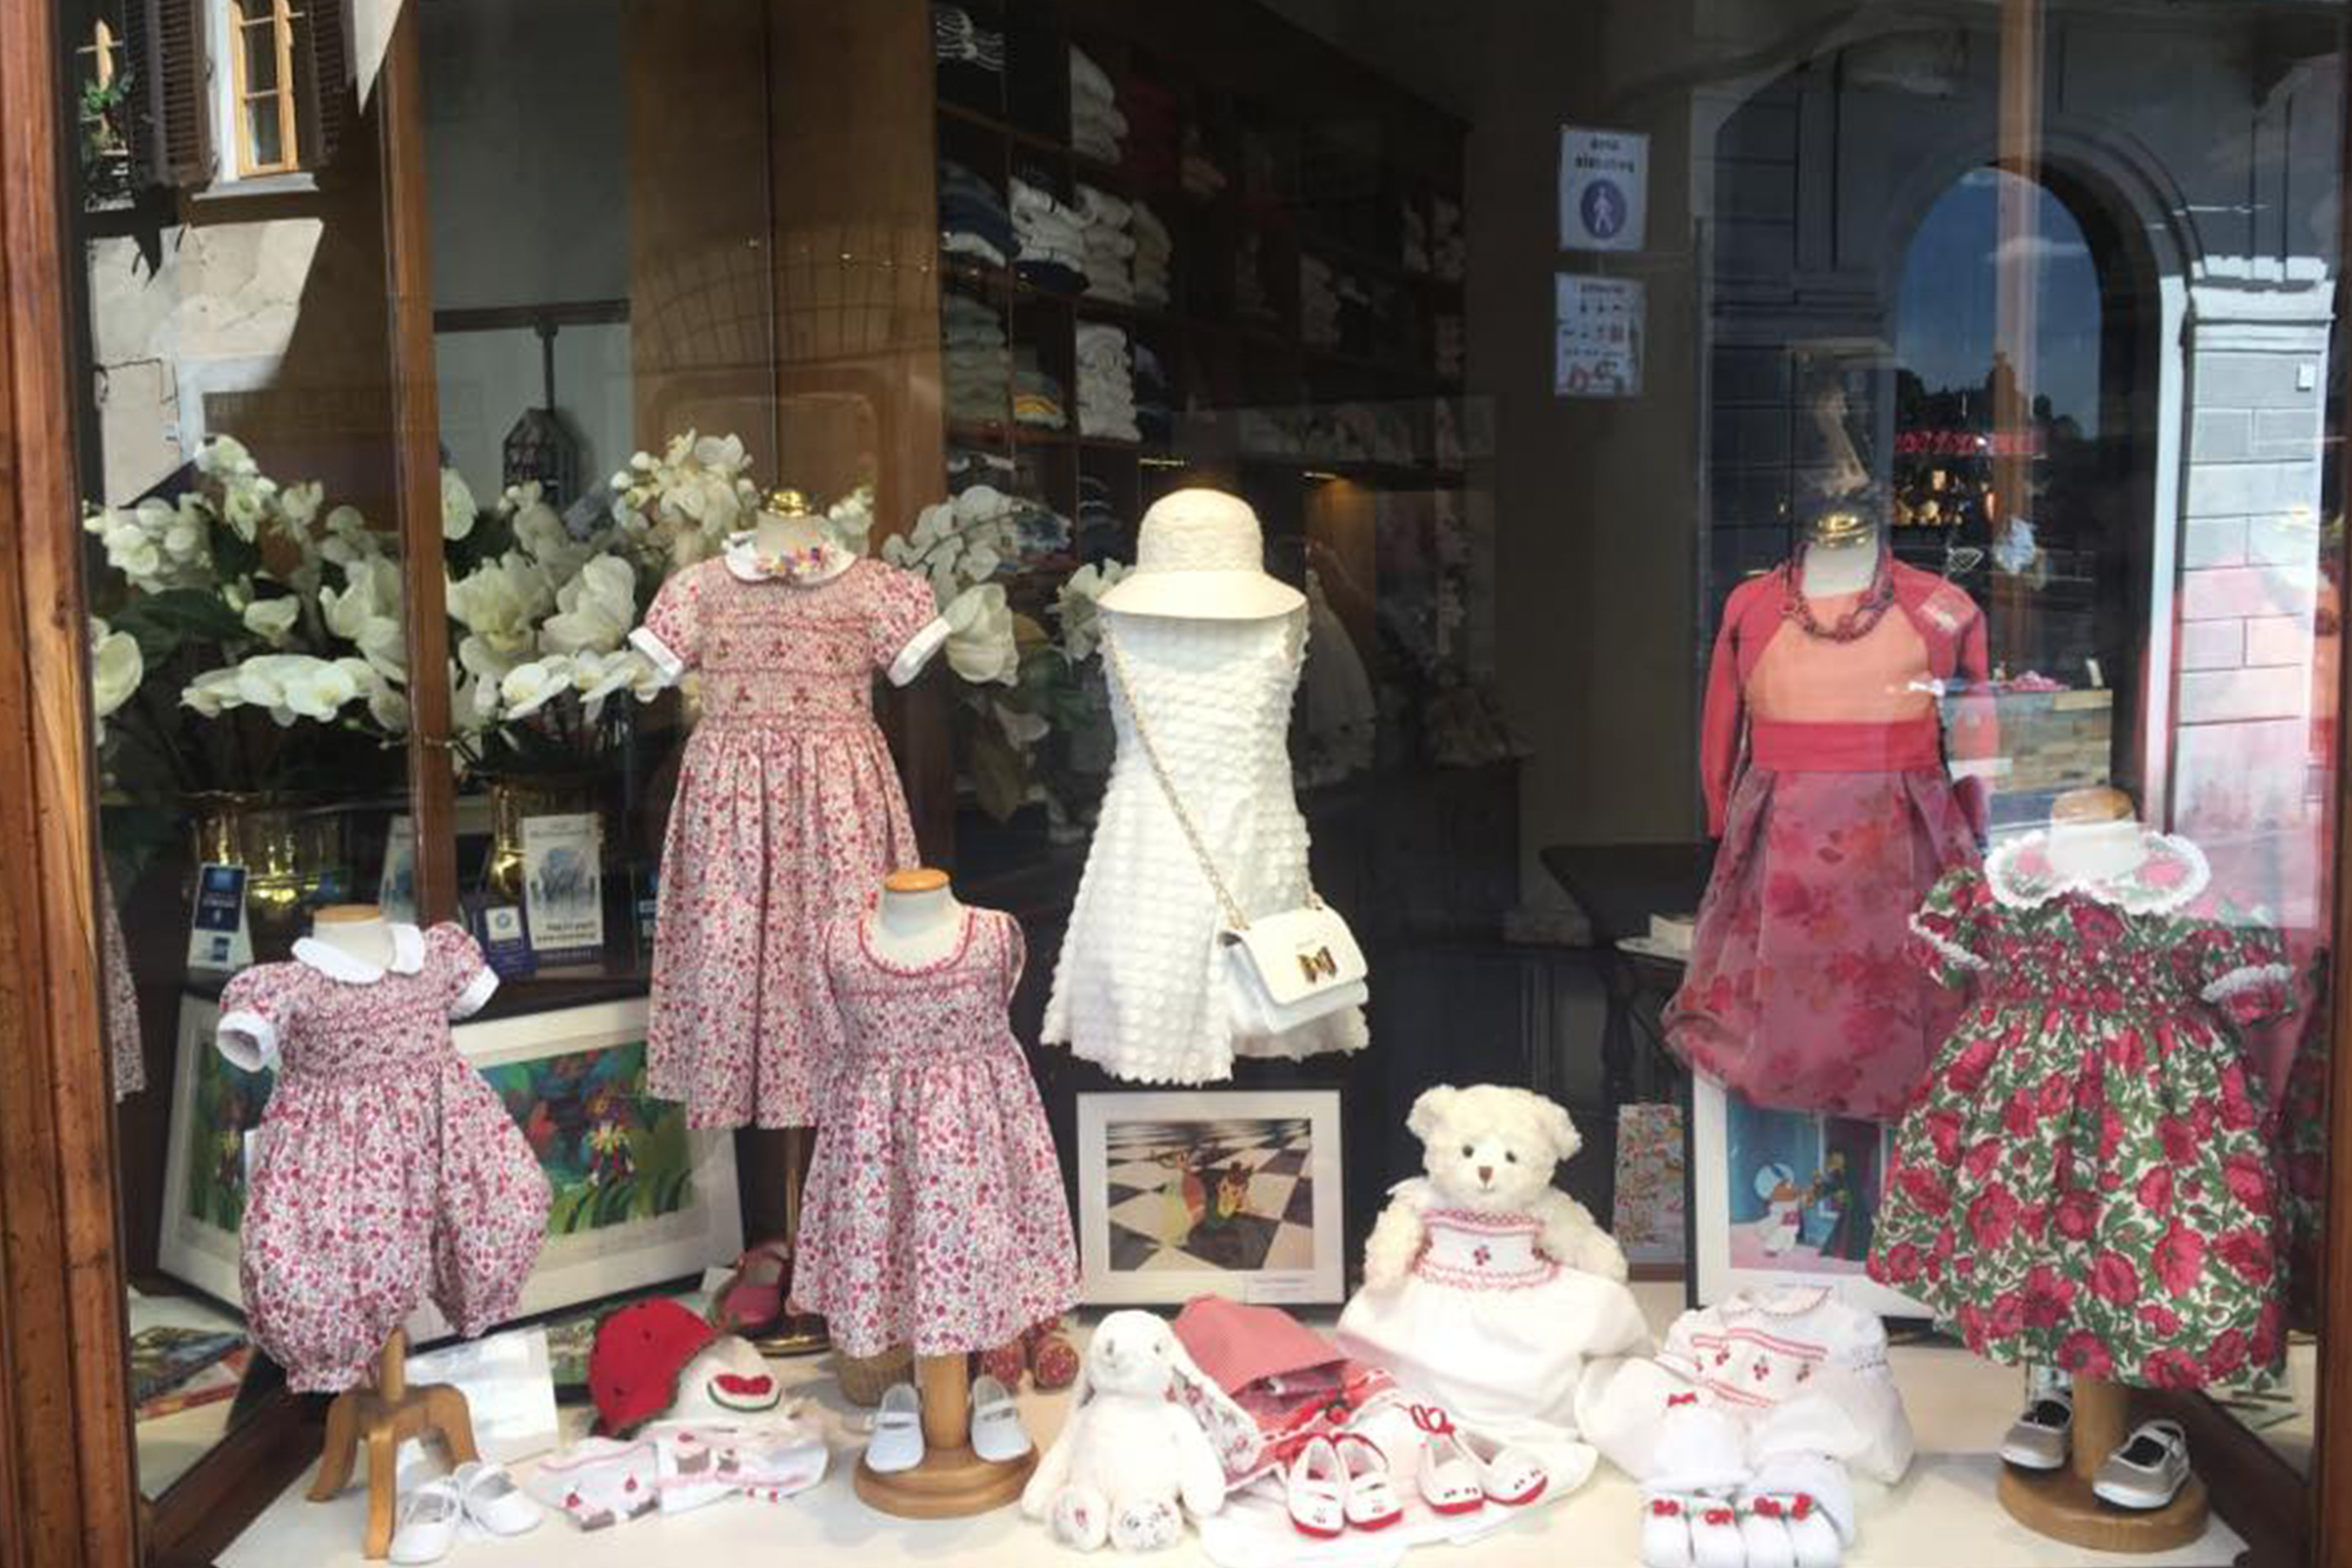 A nice window of the Anichini store in Florence